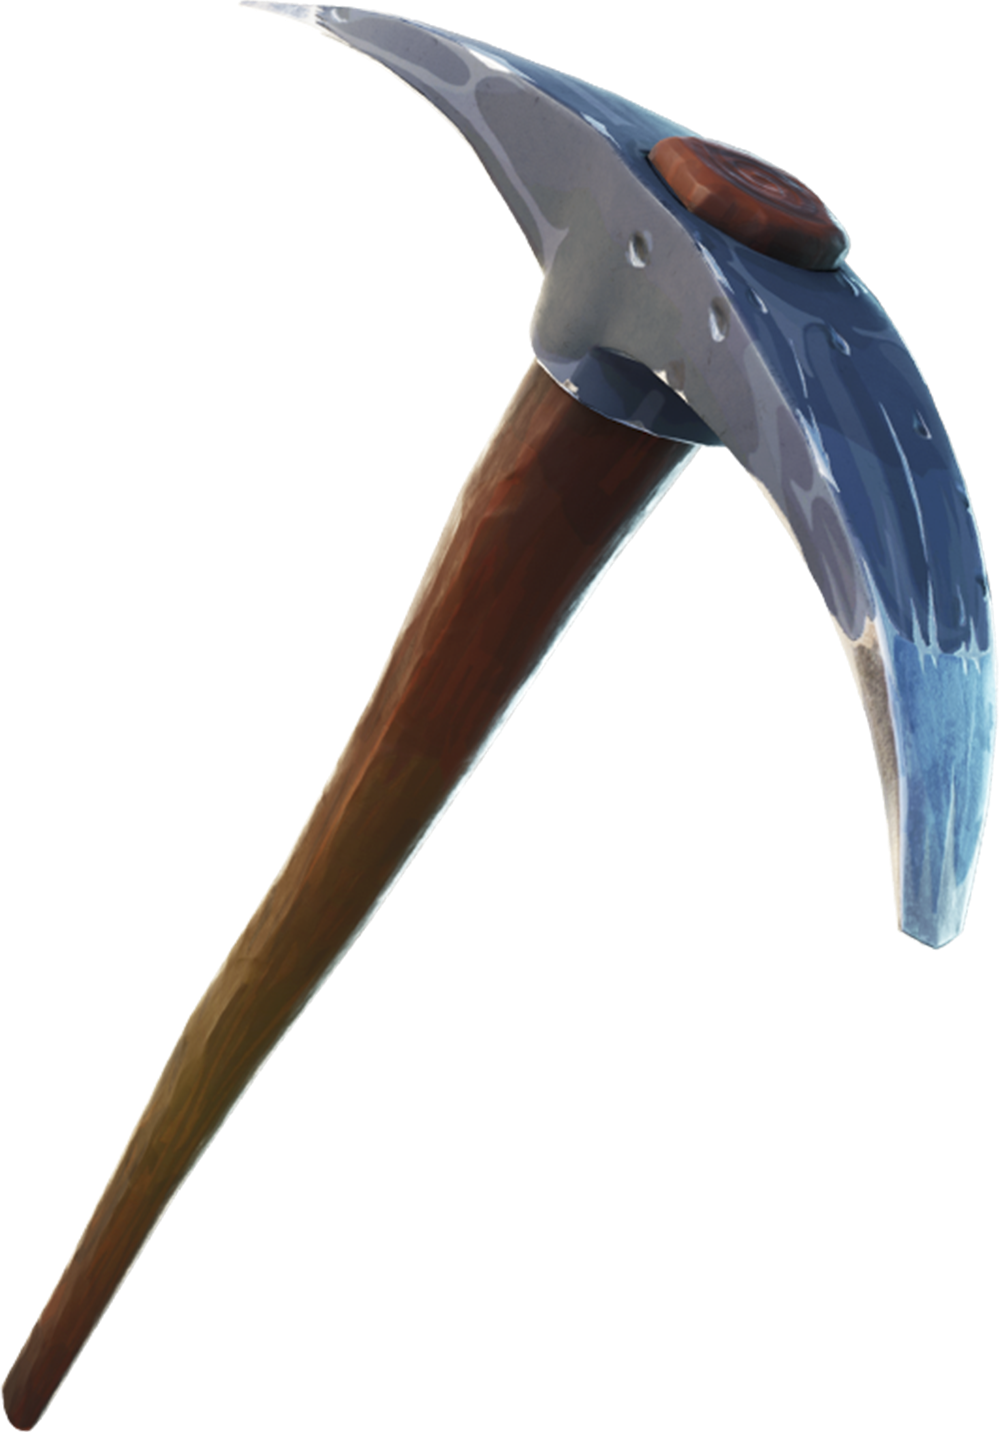 Fortnite - Throwback Axe - Axe Image